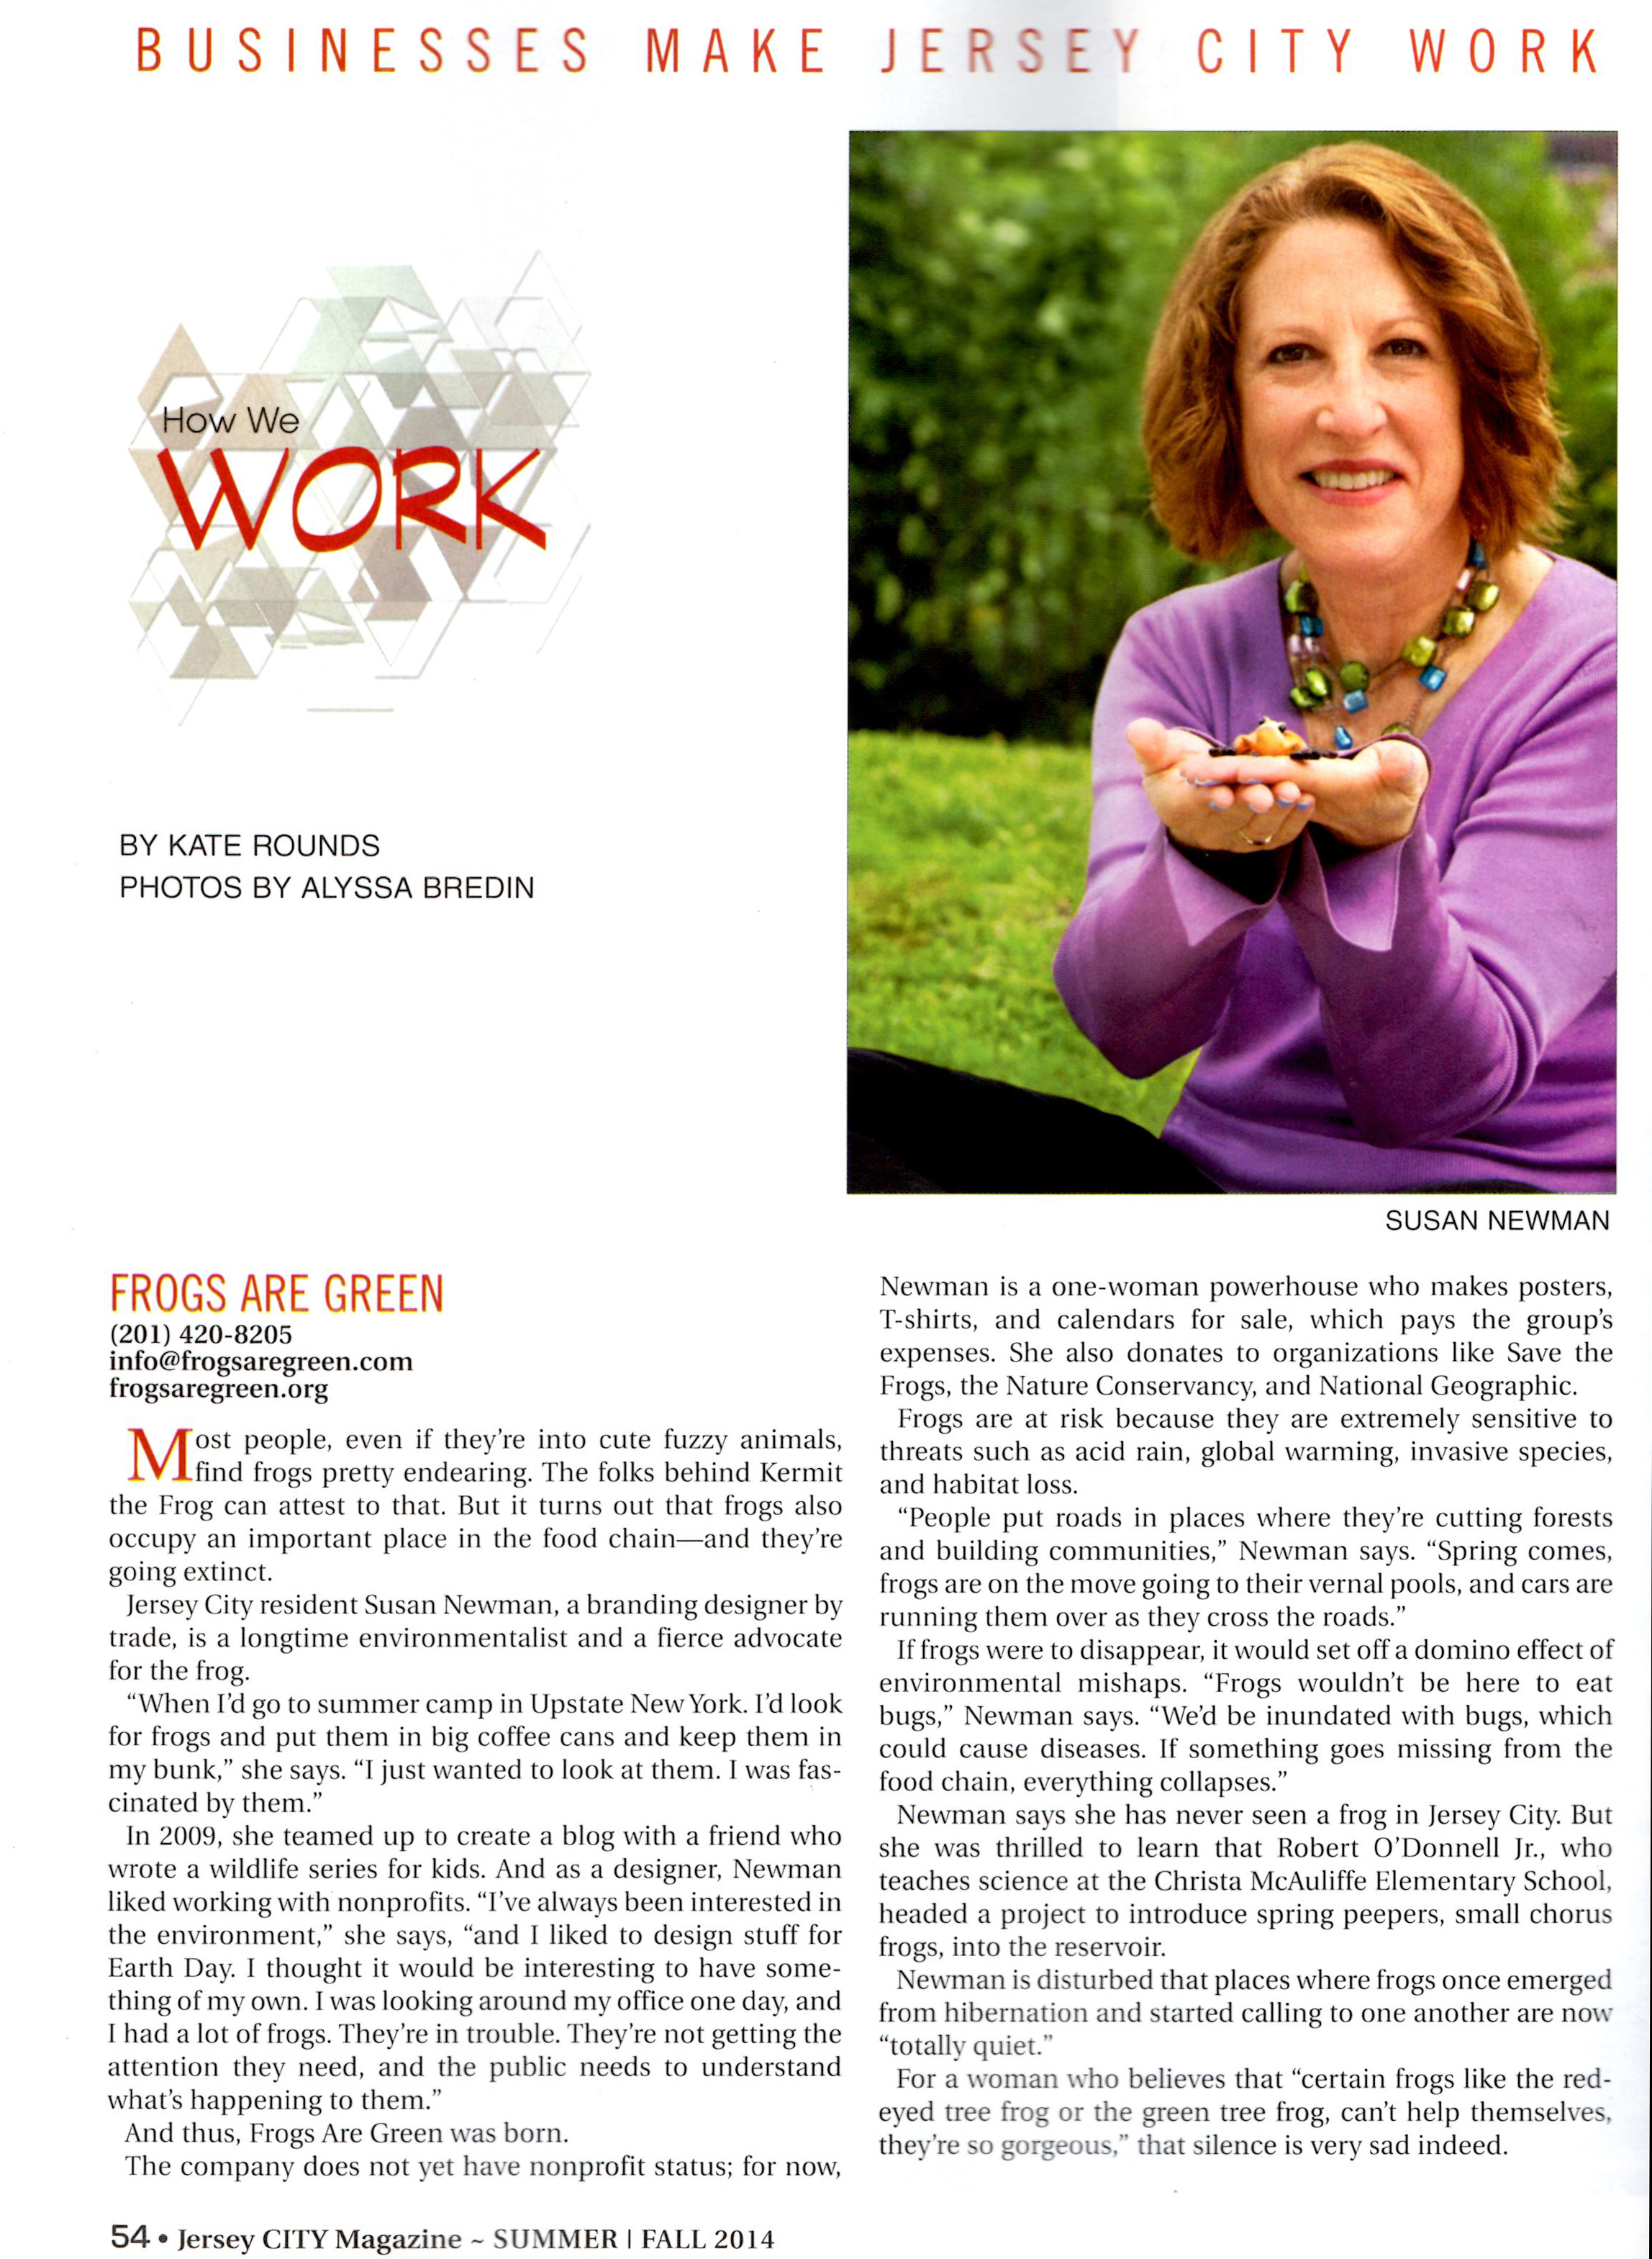 Susan Newman, founder of Frogs Are Green interviewed for Jersey City Magazine, Summer/Fall 2014 Issue